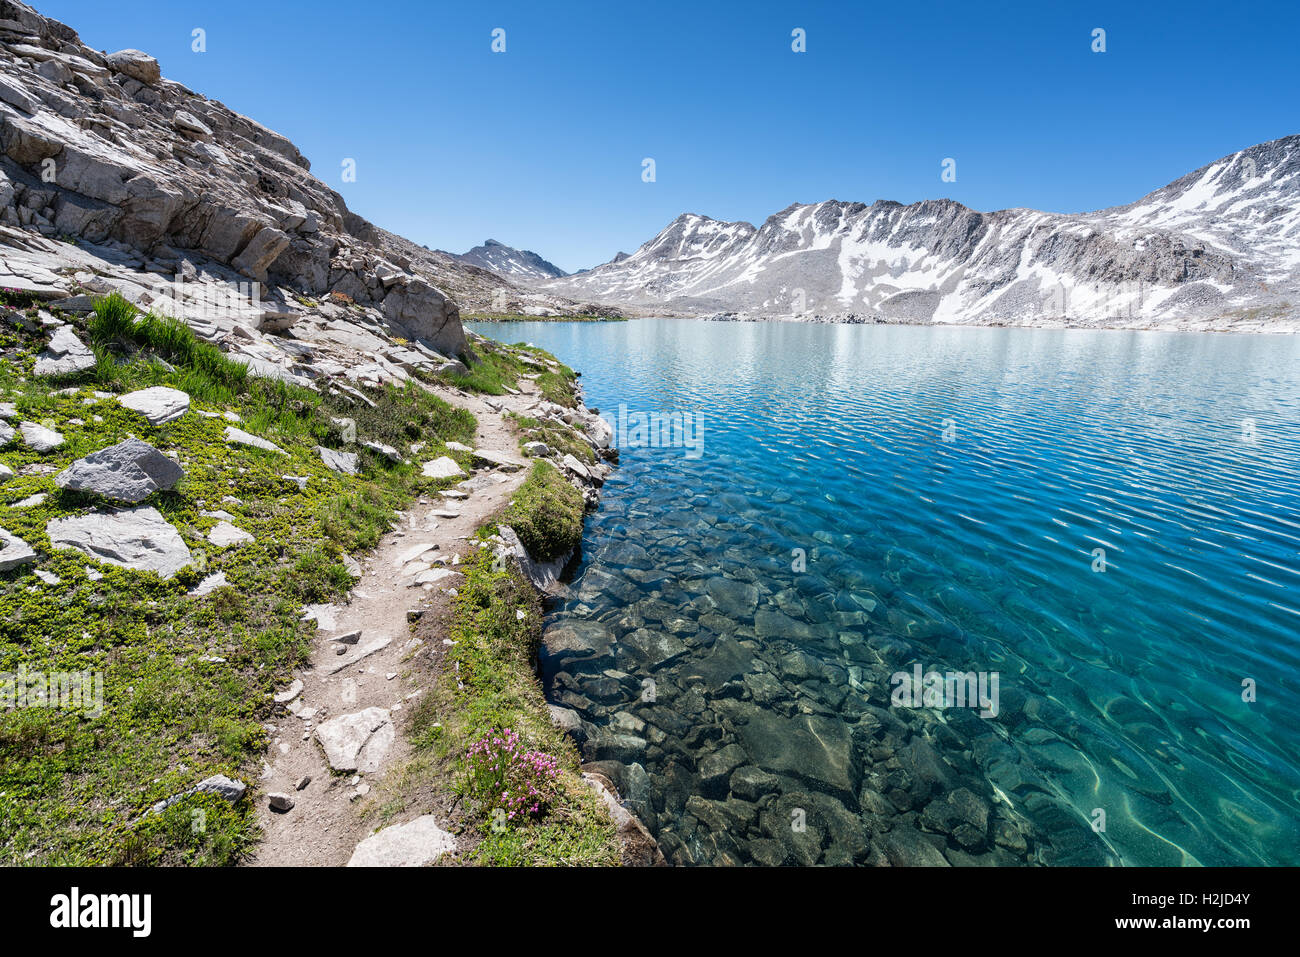 Sierra Nevada Ca: Wanda Lake, Sierra Nevada Mountains, California, United